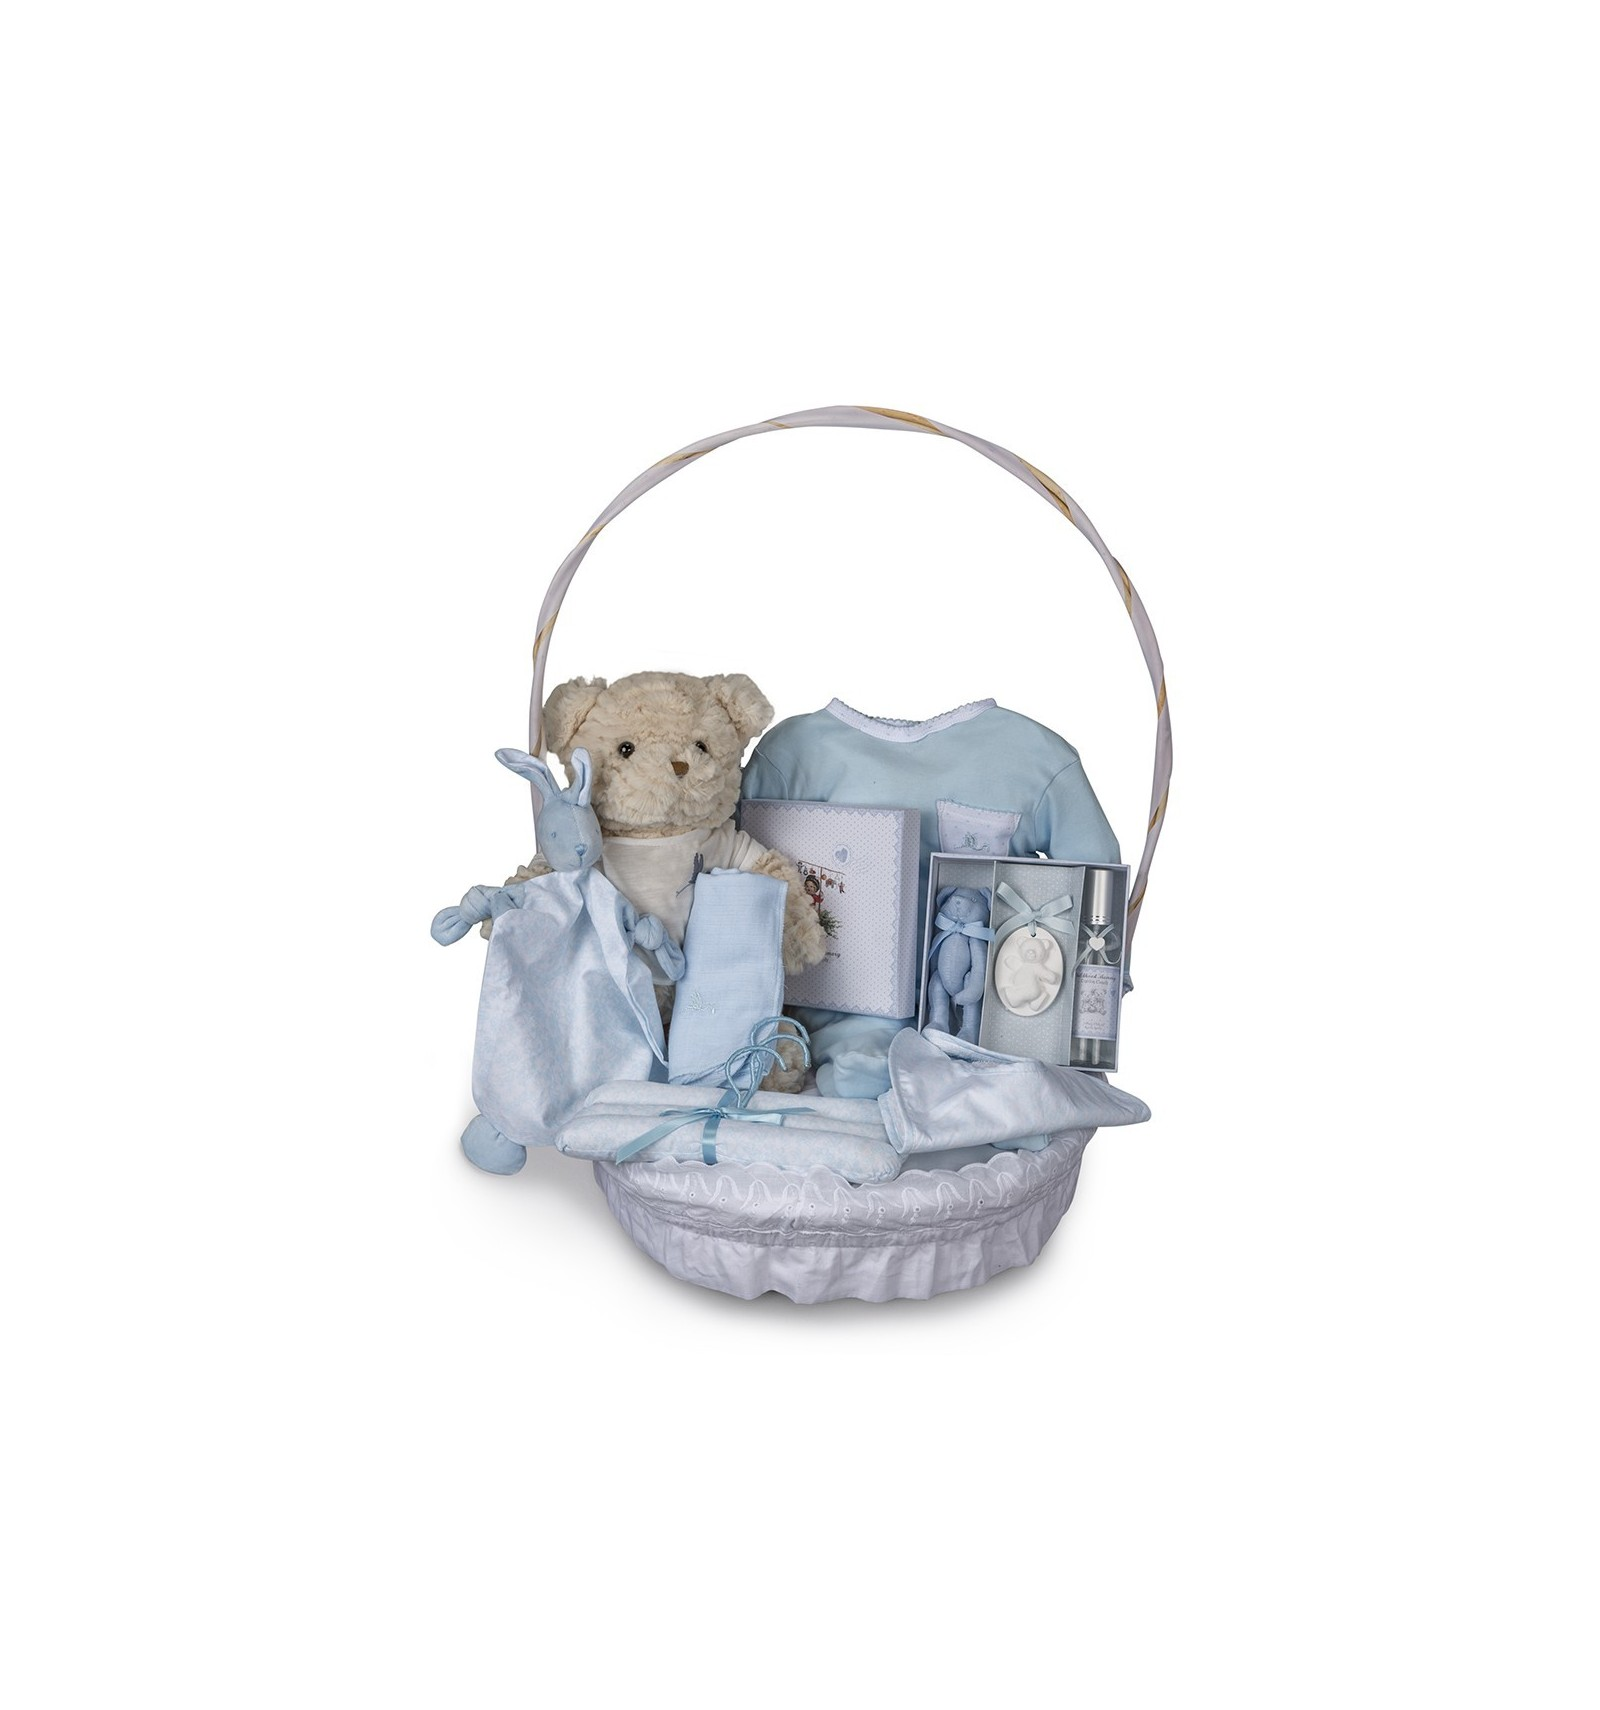 Baby Gift Baskets Delivered Uk : Vintage complete baby gift basket